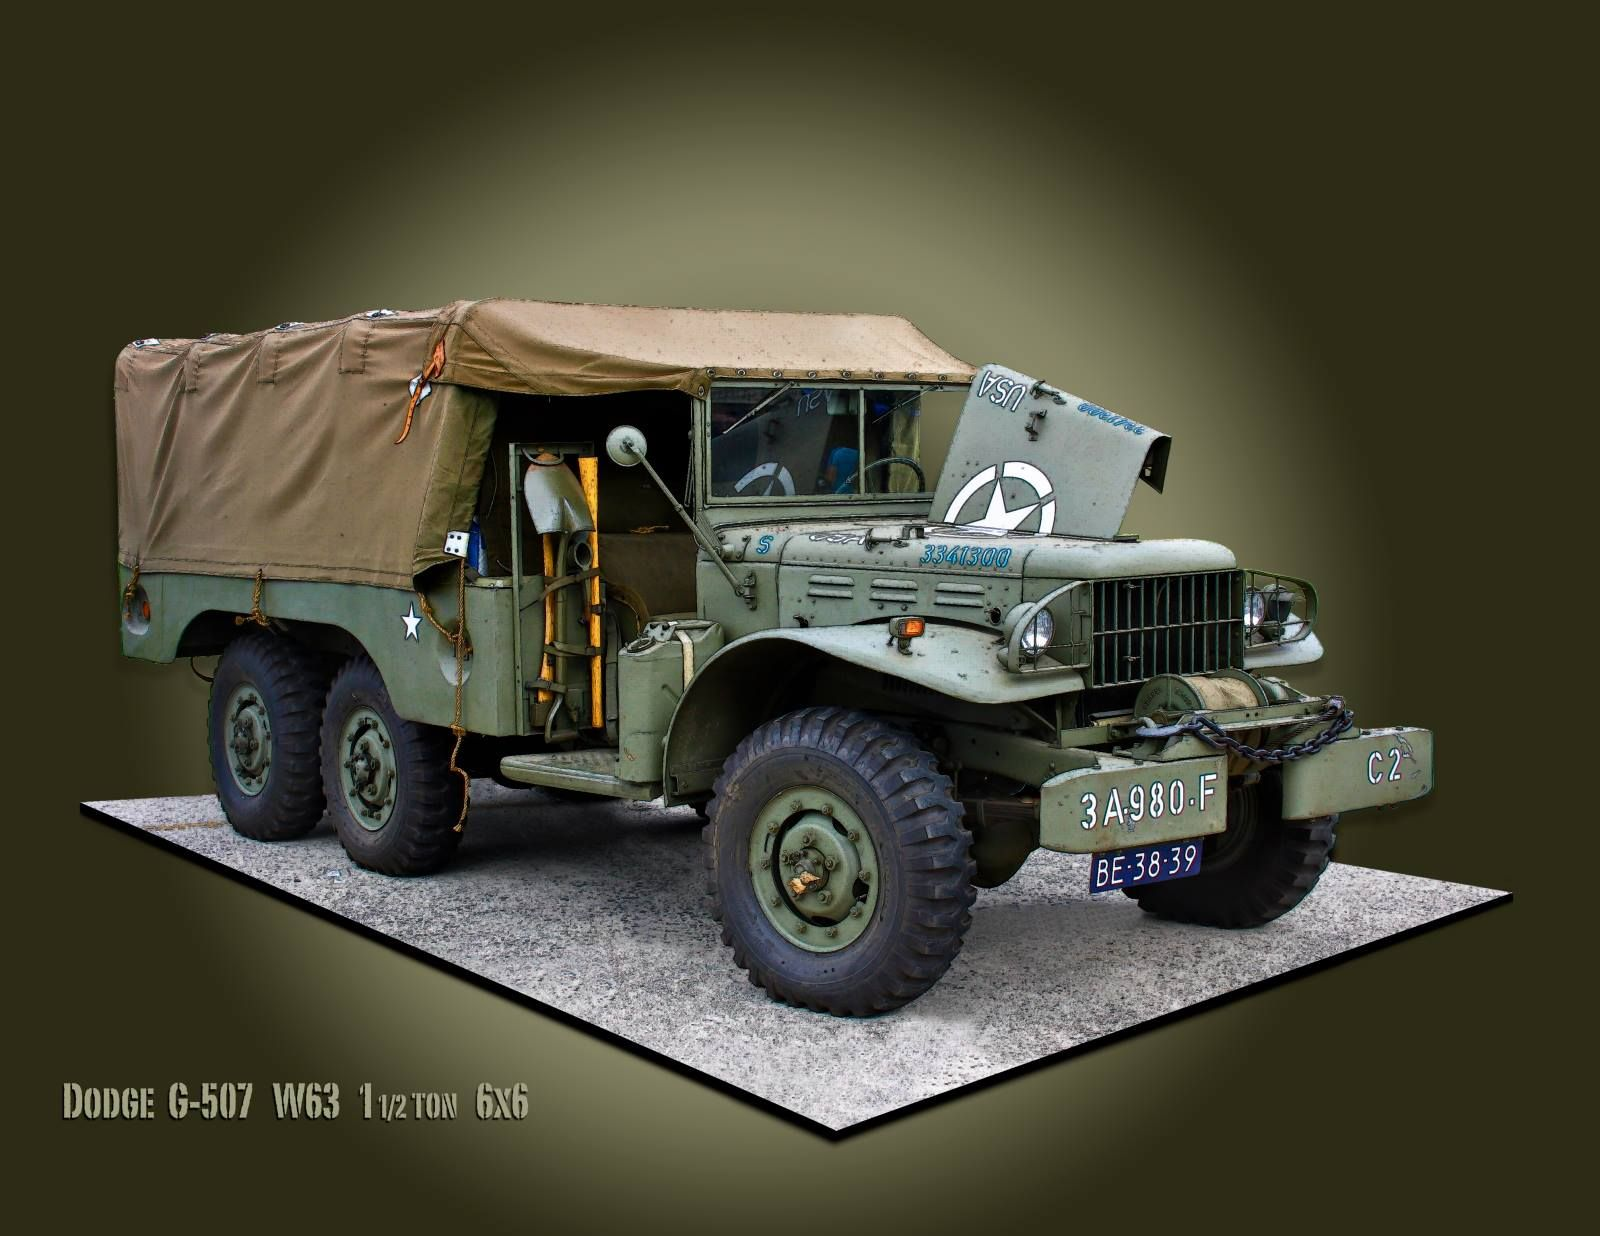 Dodge trucks in wwii - 1943 Dodge Wc63 Weapons Carrier U S Army Vehicle